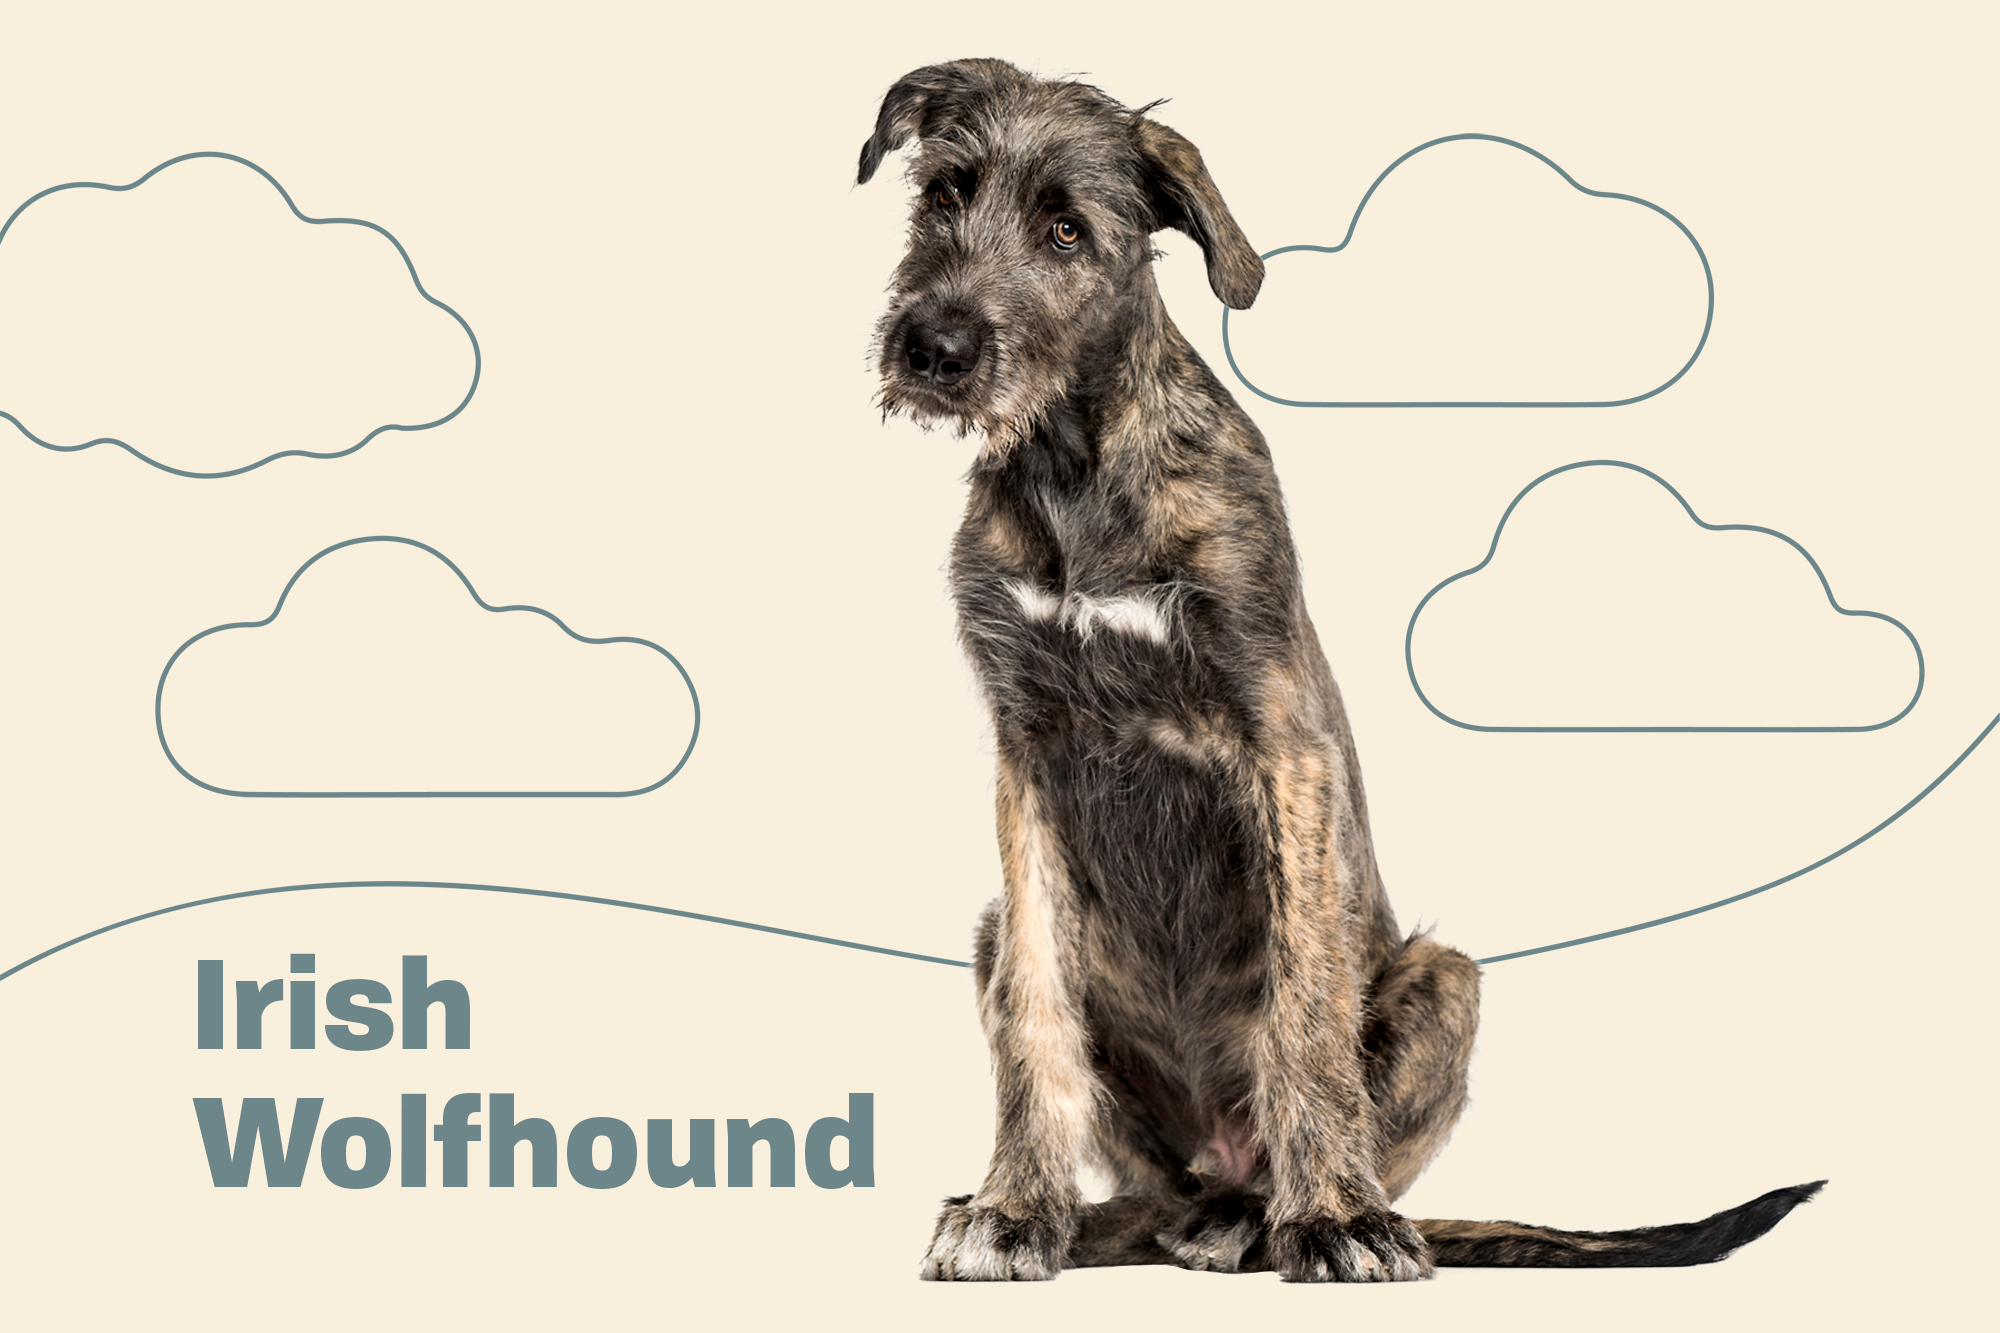 Irish Wolfhound Breed Photo